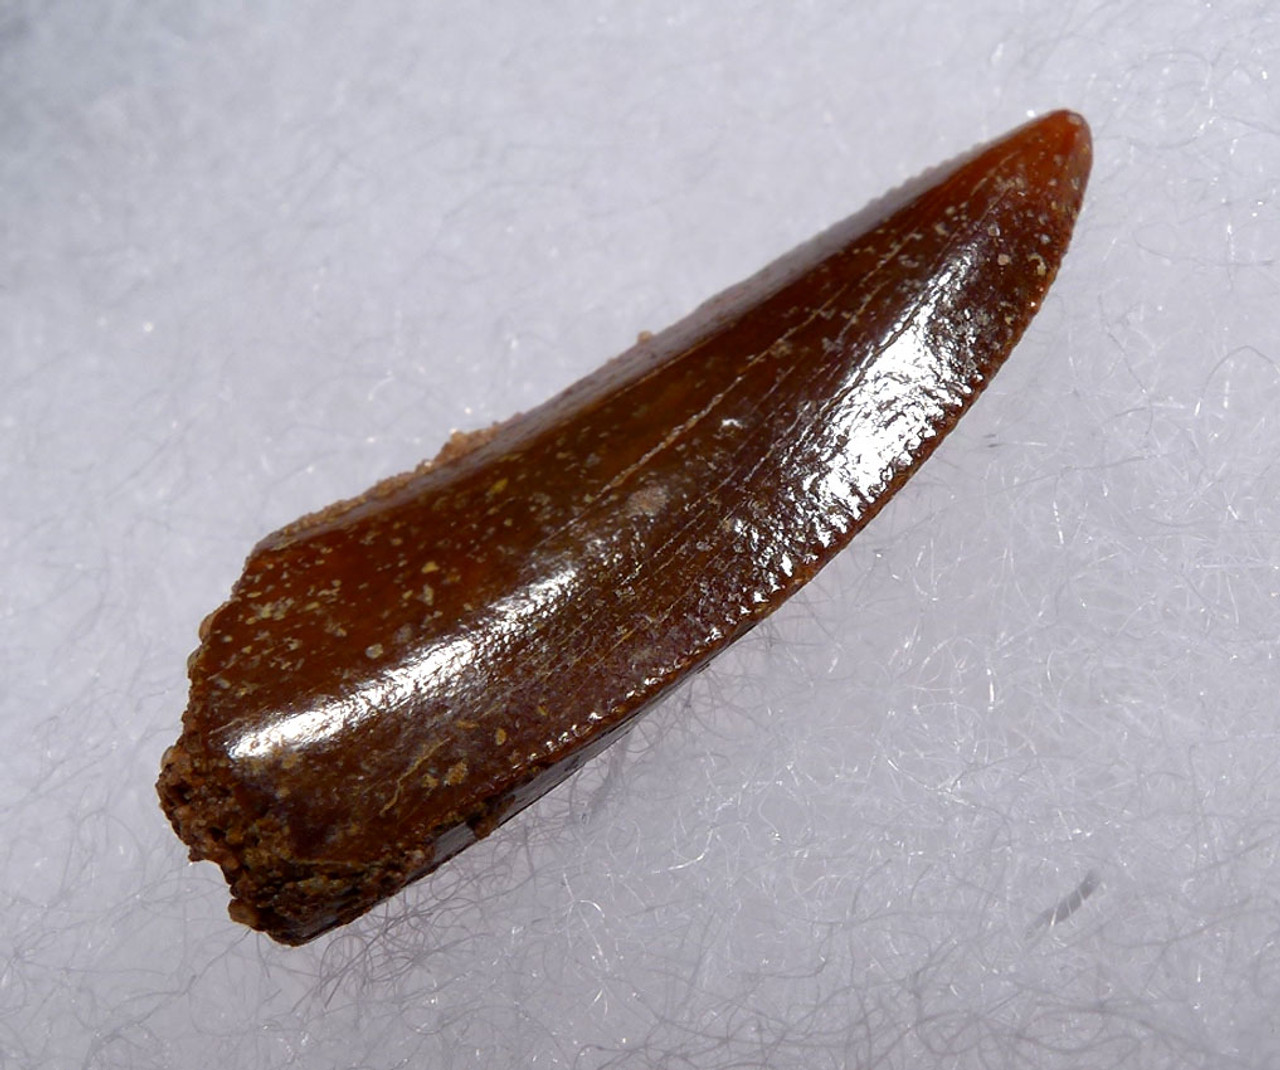 """ RAPTOR "" FOSSIL DINOSAUR TOOTH FROM A LARGE DROMAEOSAUR *DT6-312"